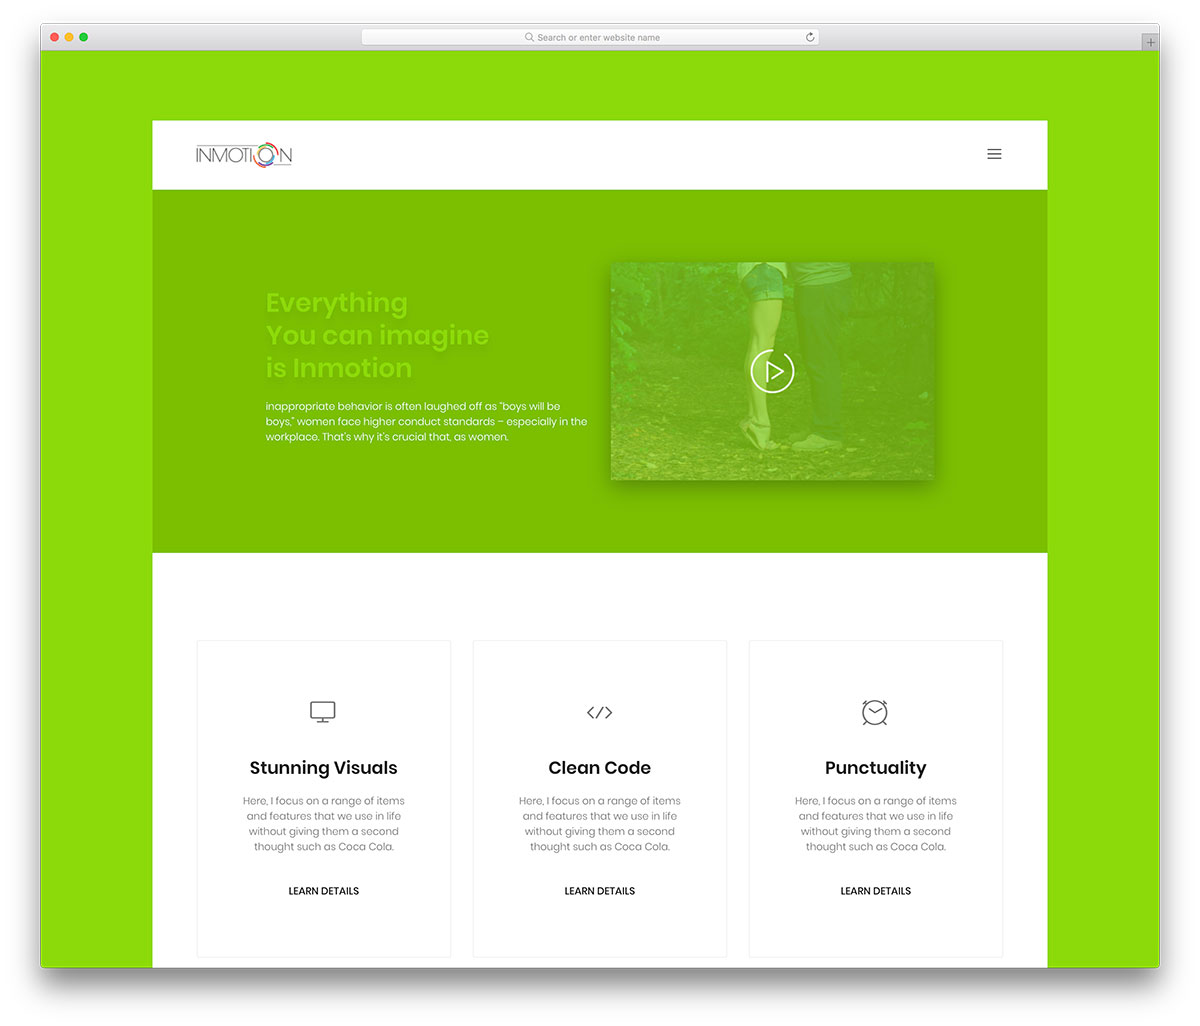 Inmotion Is An Eco Friendly Theme Based Free Website Template This Best Suits For Nature Lifestyle And Travel Bloggers The Fresh Green Color